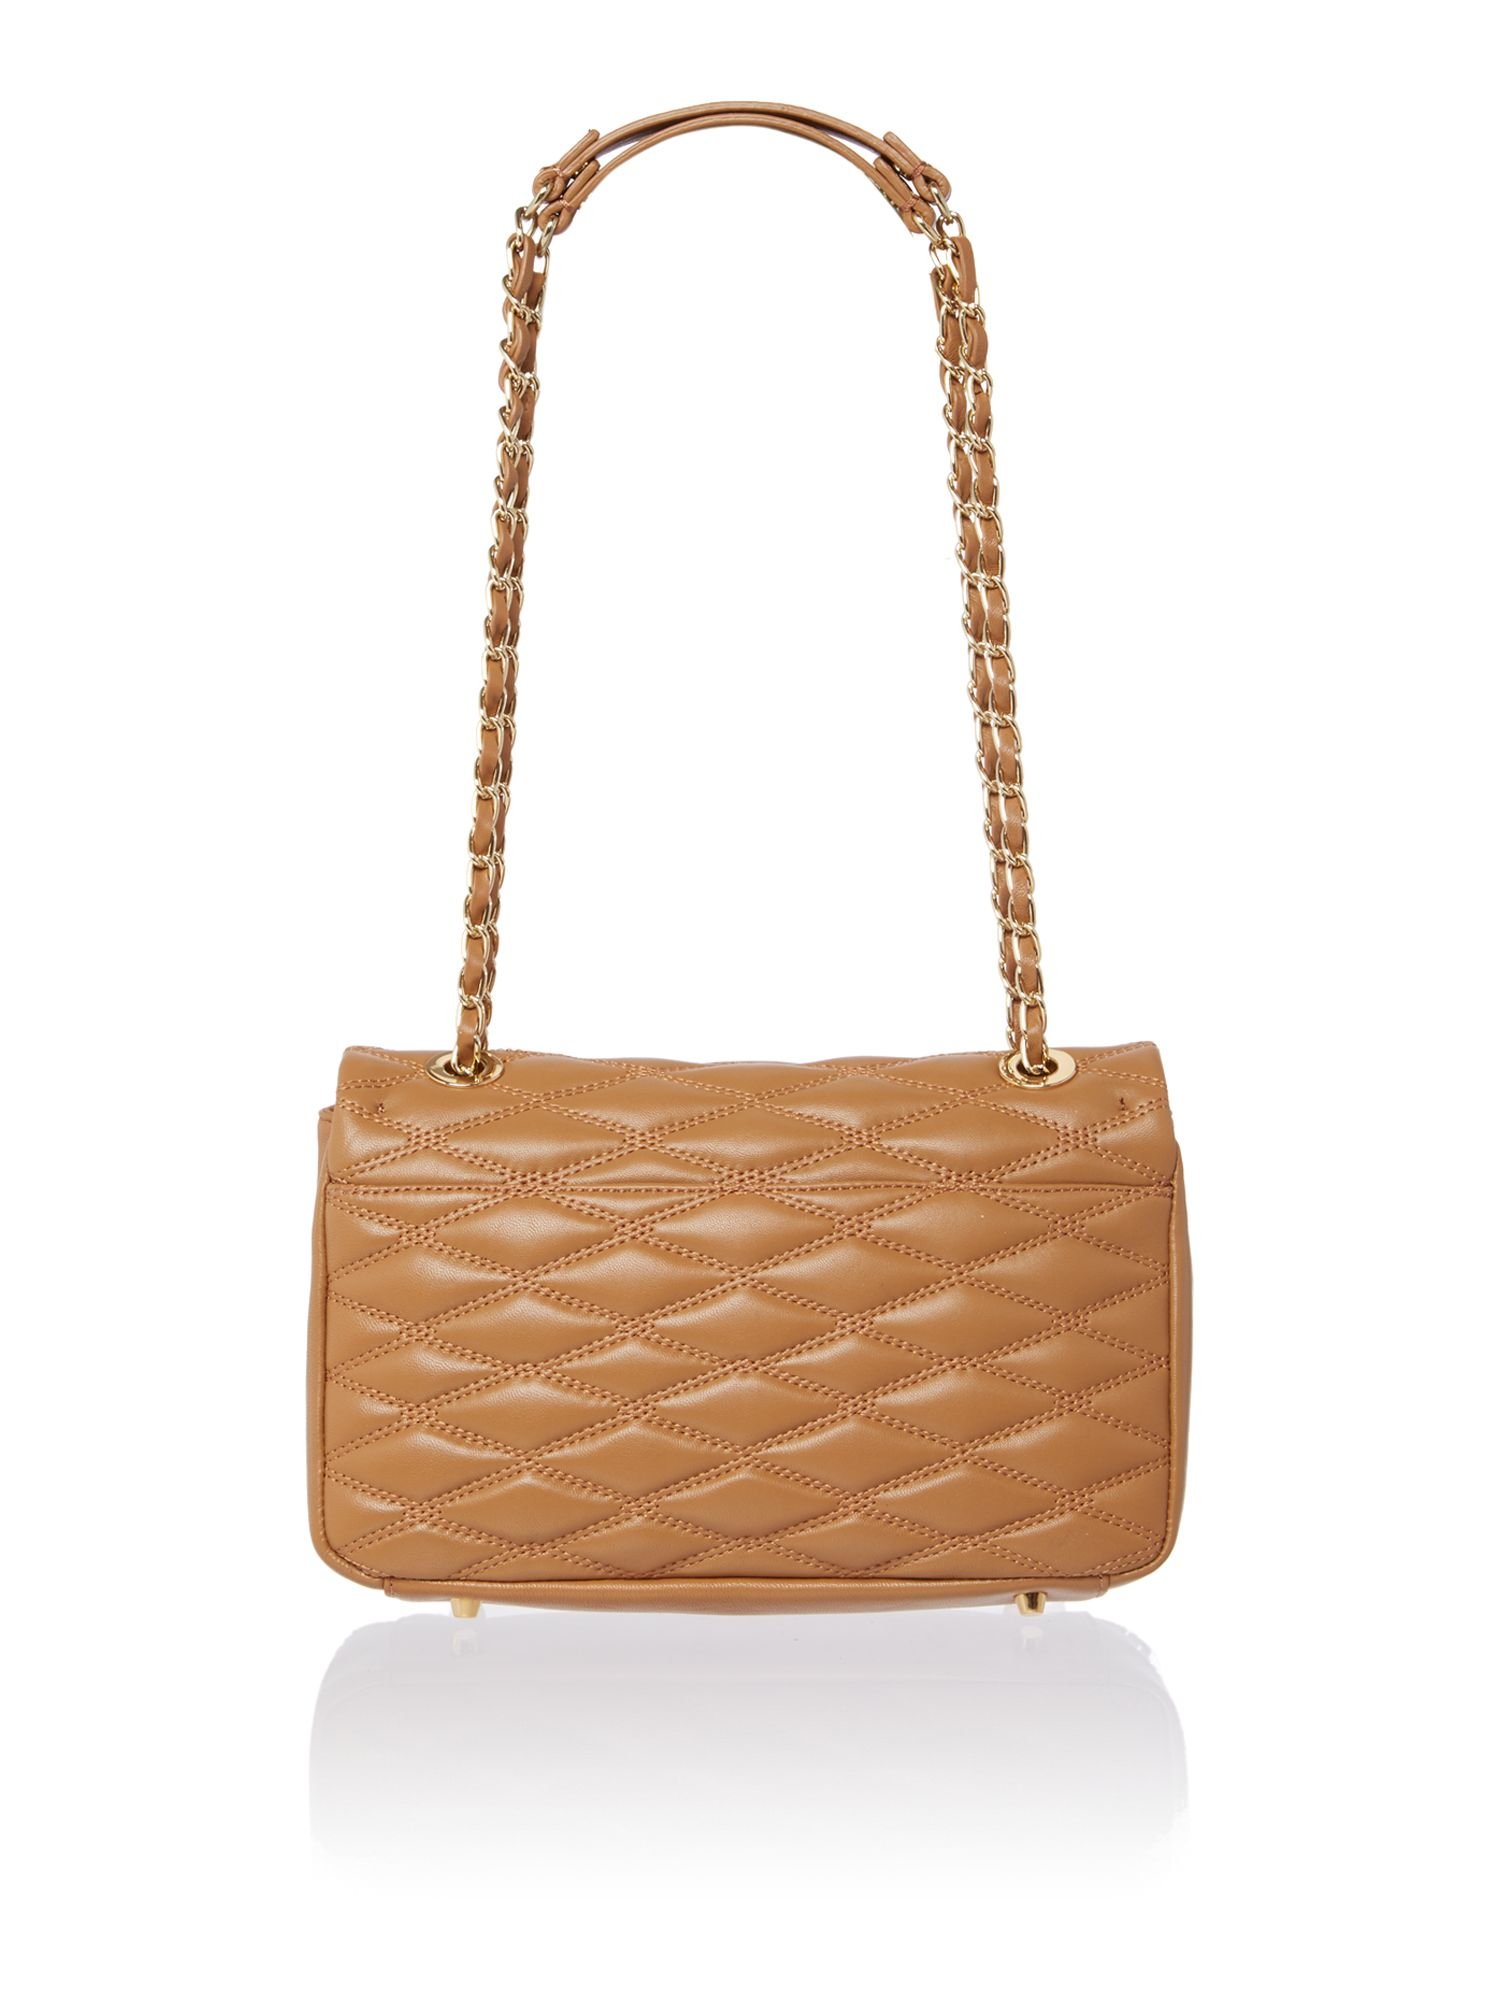 Dkny Quilted Light Tan Flap Over Shoulder Bag in Brown | Lyst